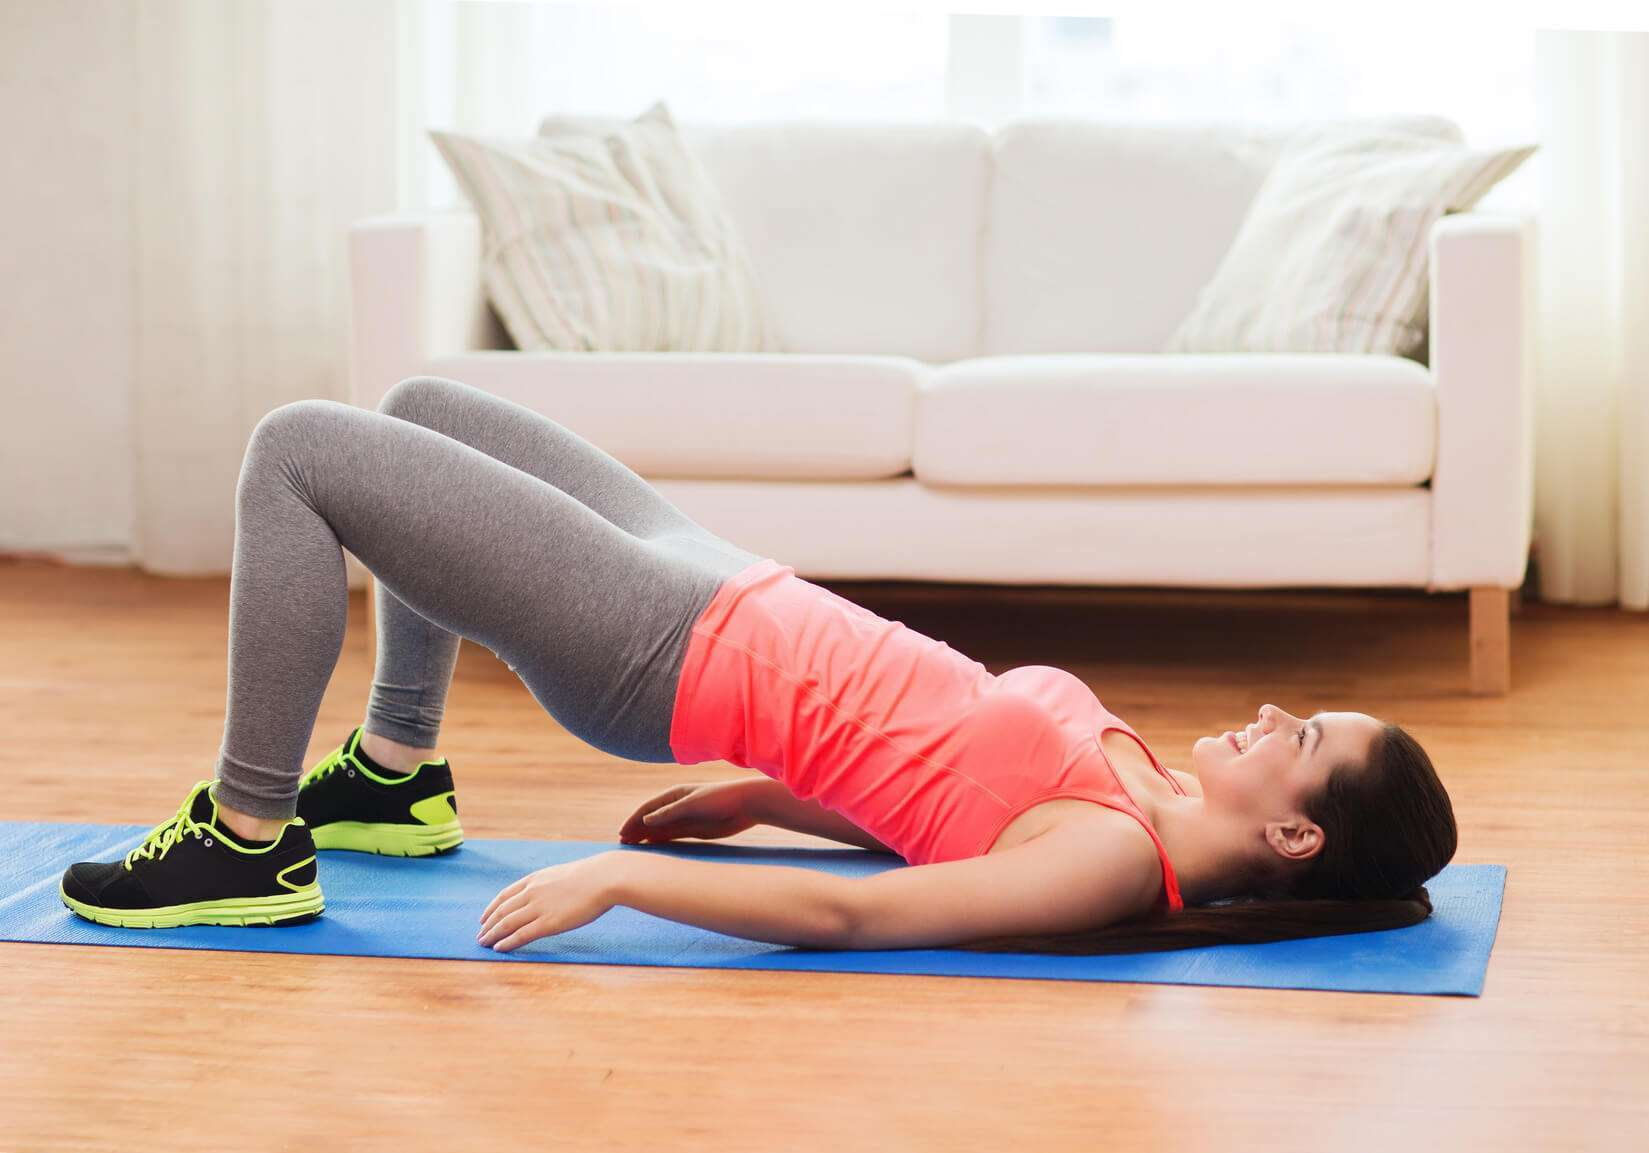 Woman performing bridging, which is an effective exercise for those who suffer from back pain.